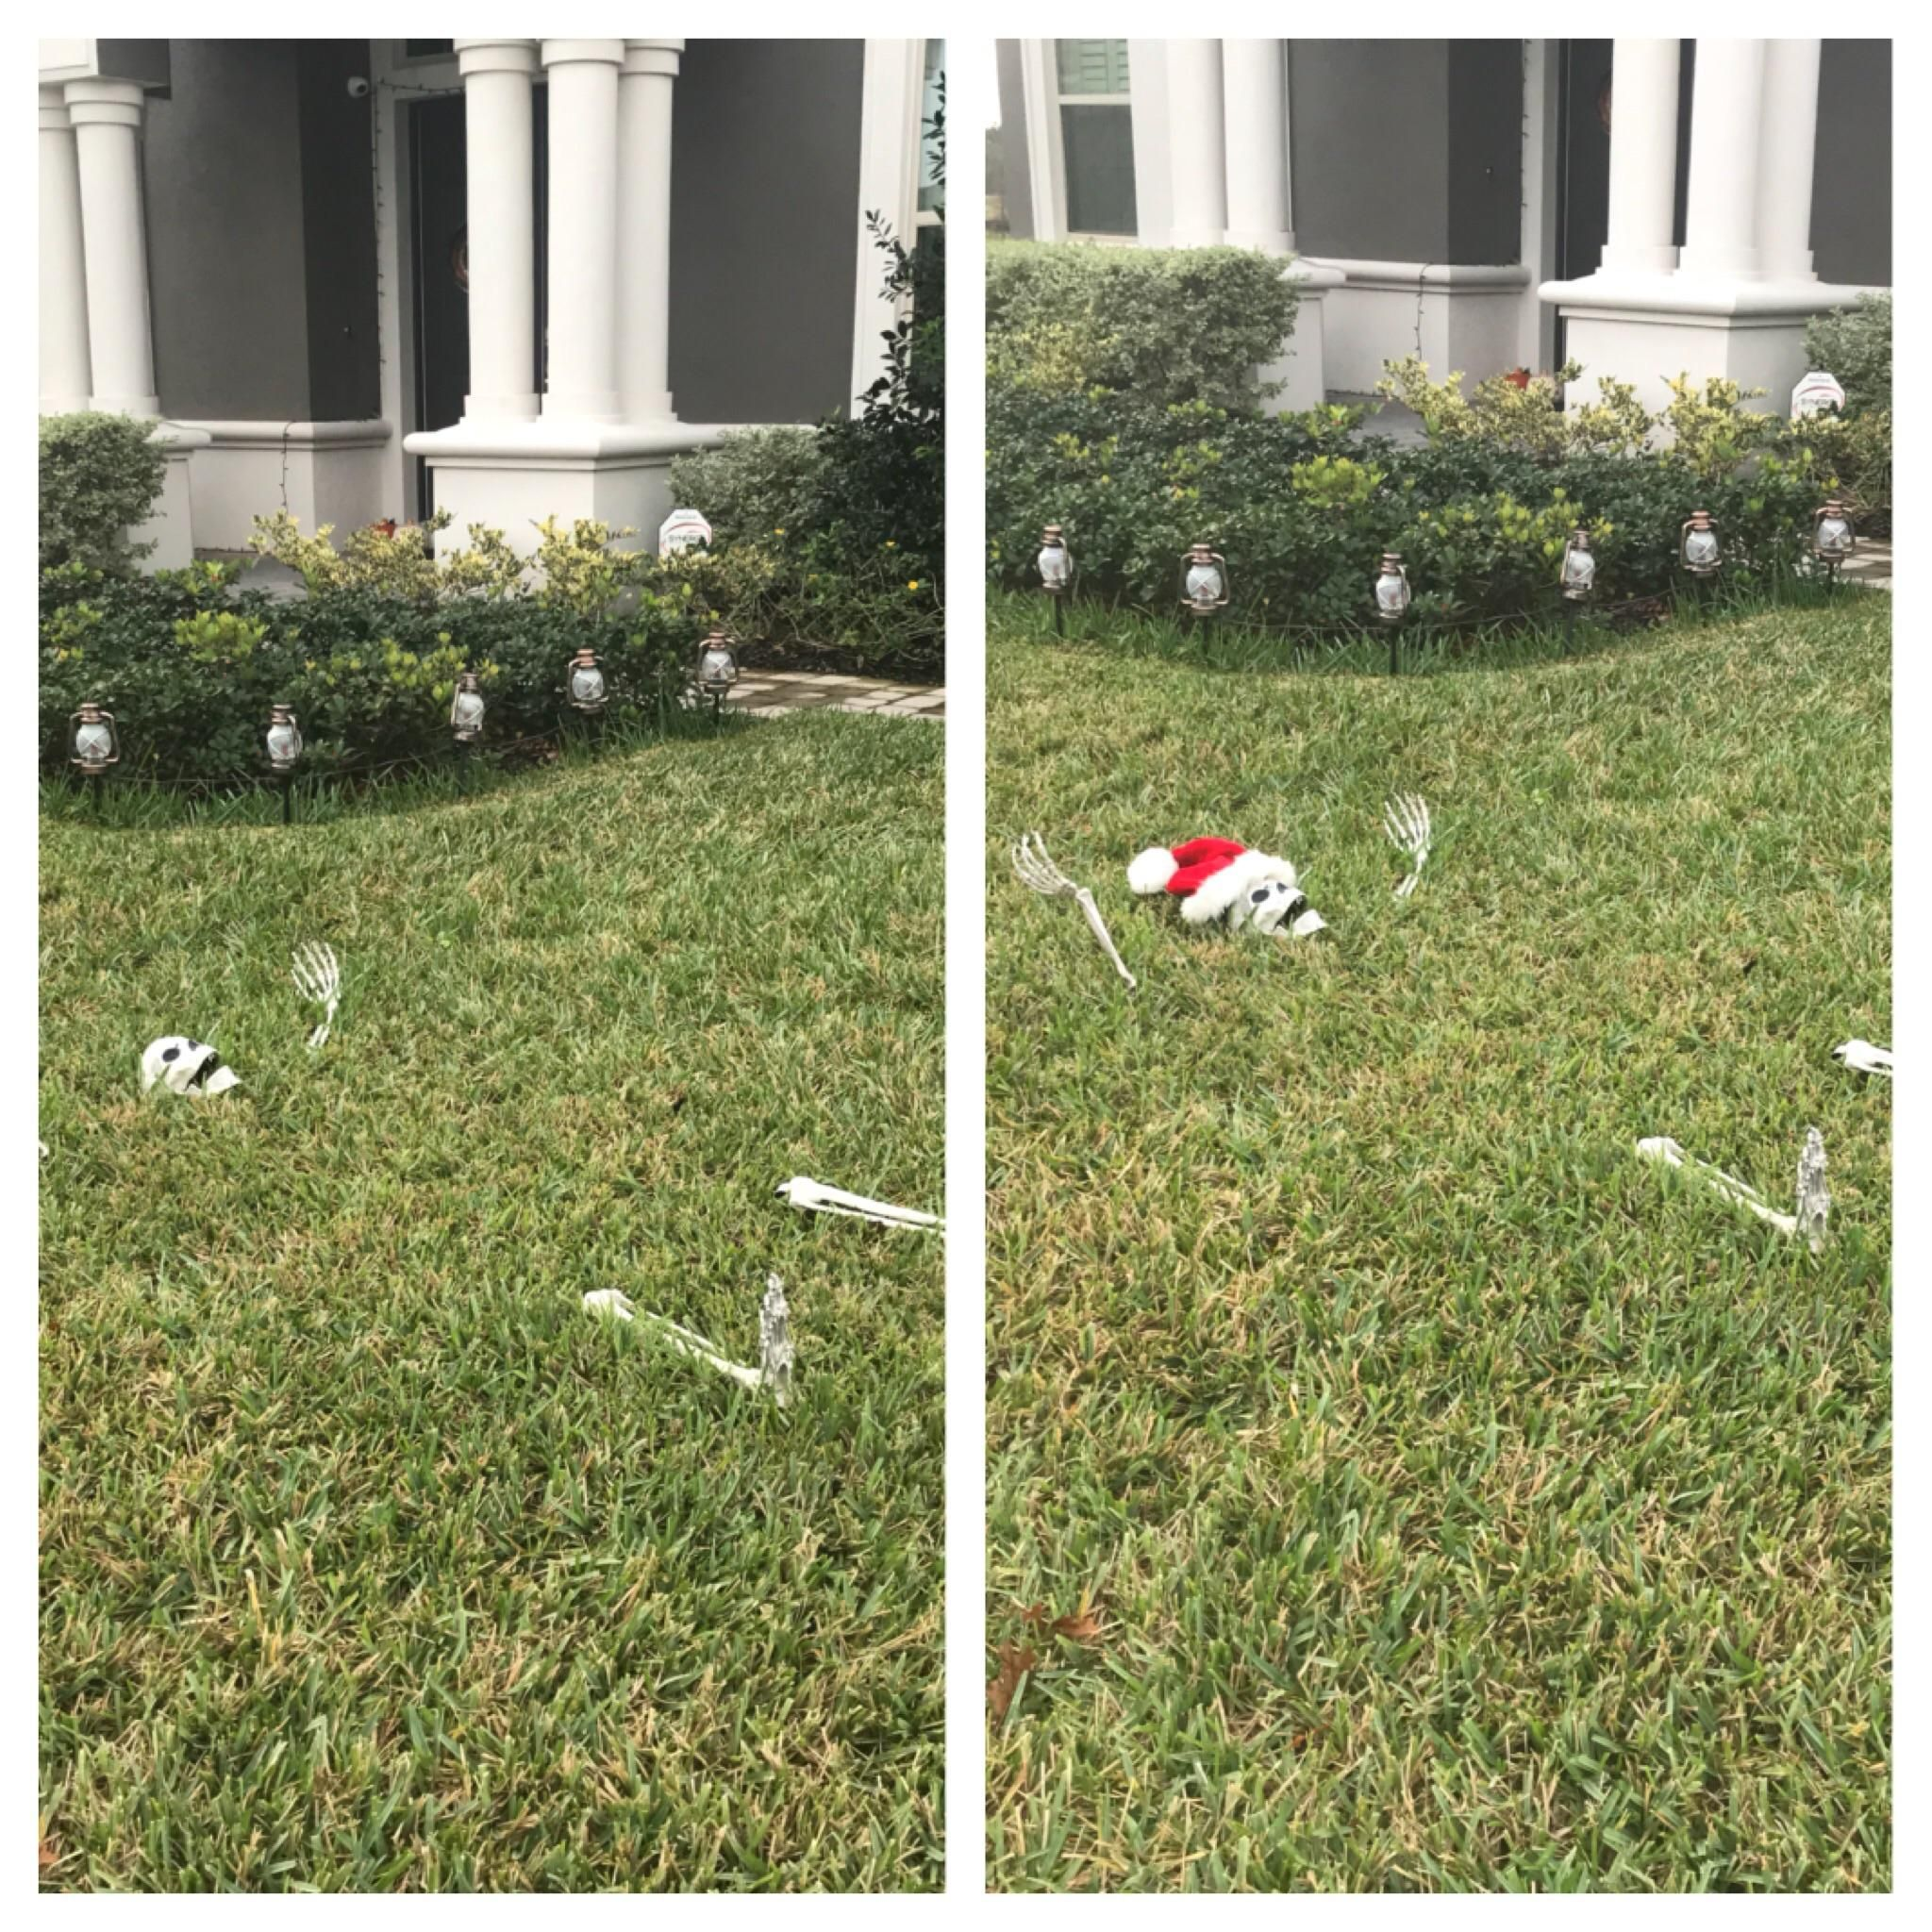 Finally finished the Christmas decorations